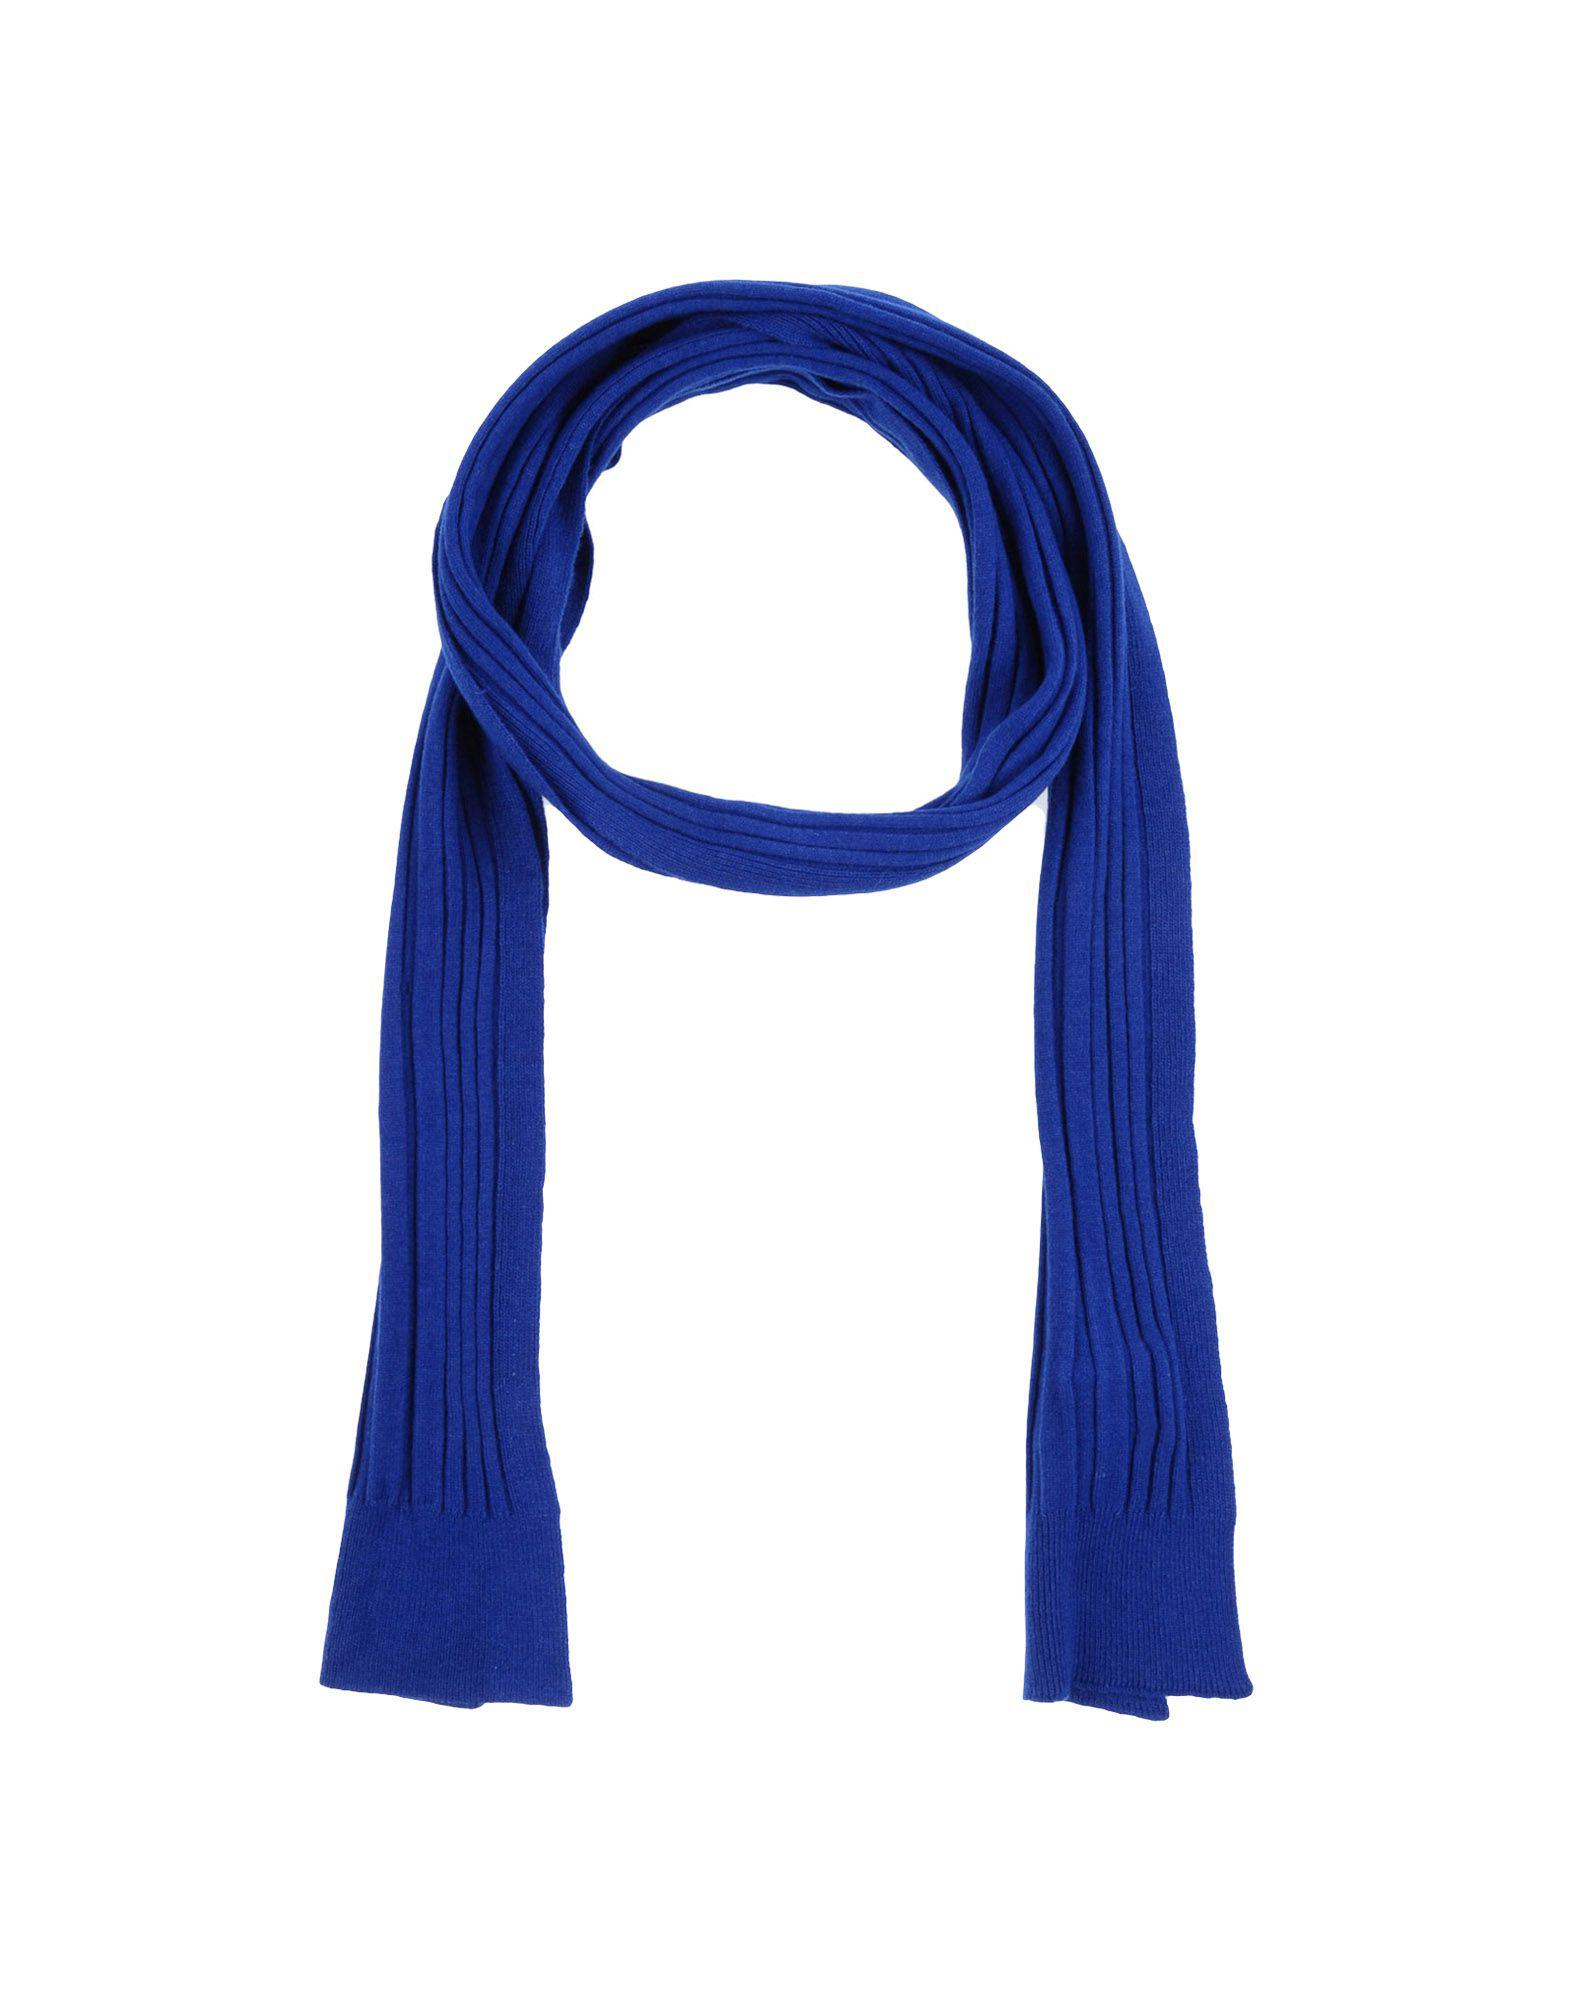 ACCESSORIES - Oblong scarves Astrid Andersen Mo340